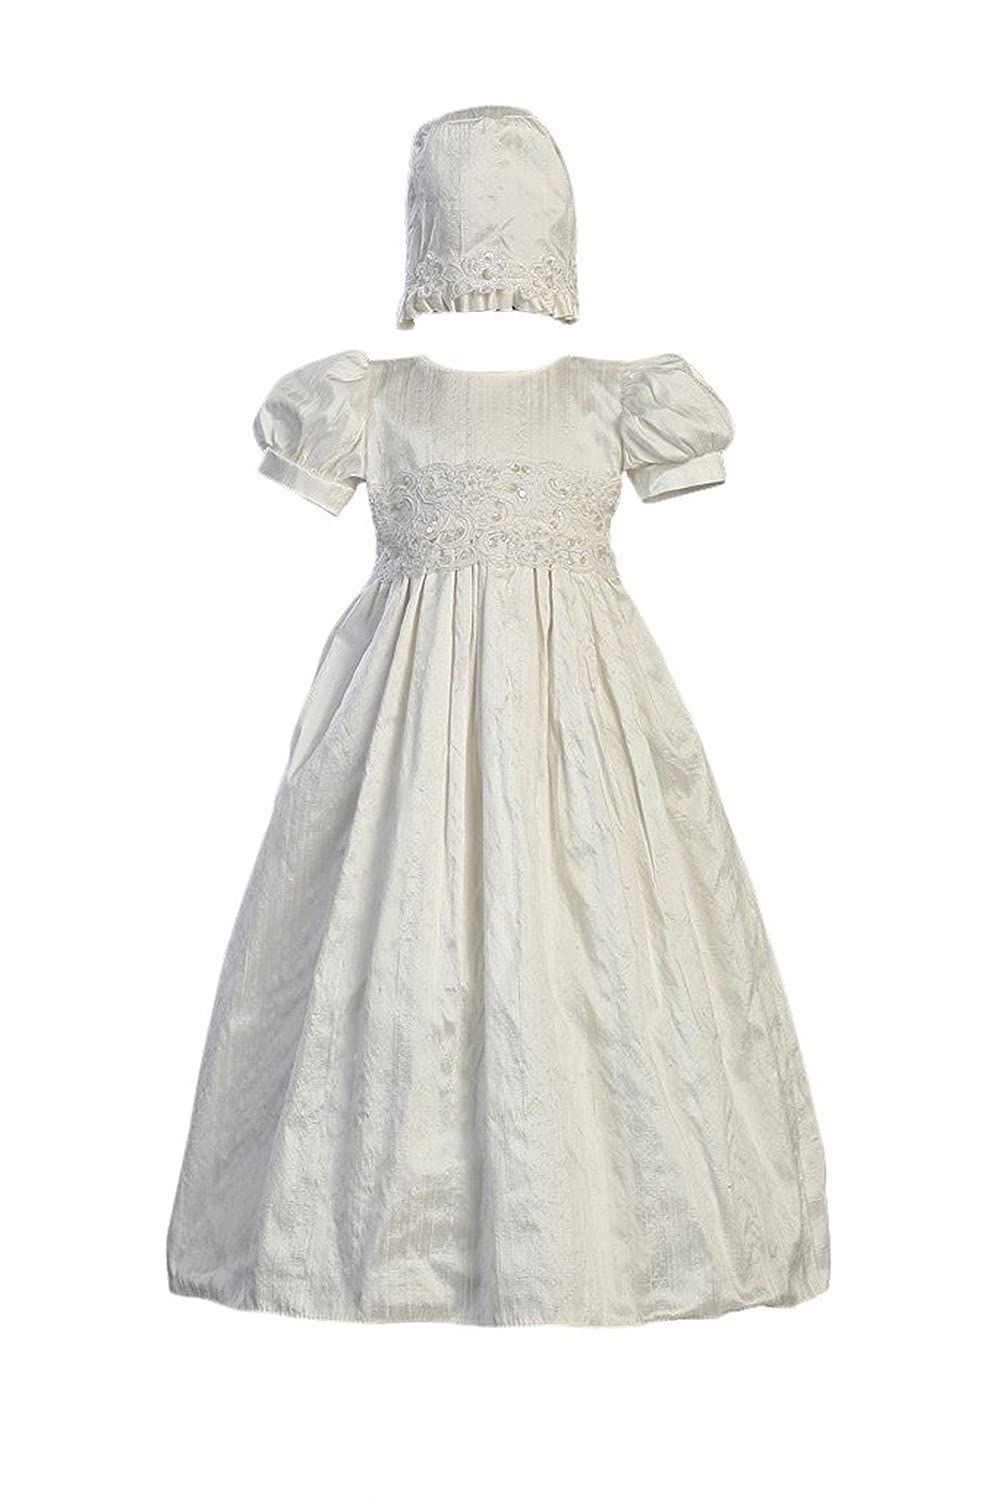 646e82027114 Amazon.com  White Silk Christening Baptism Gown with Laced Bodice ...